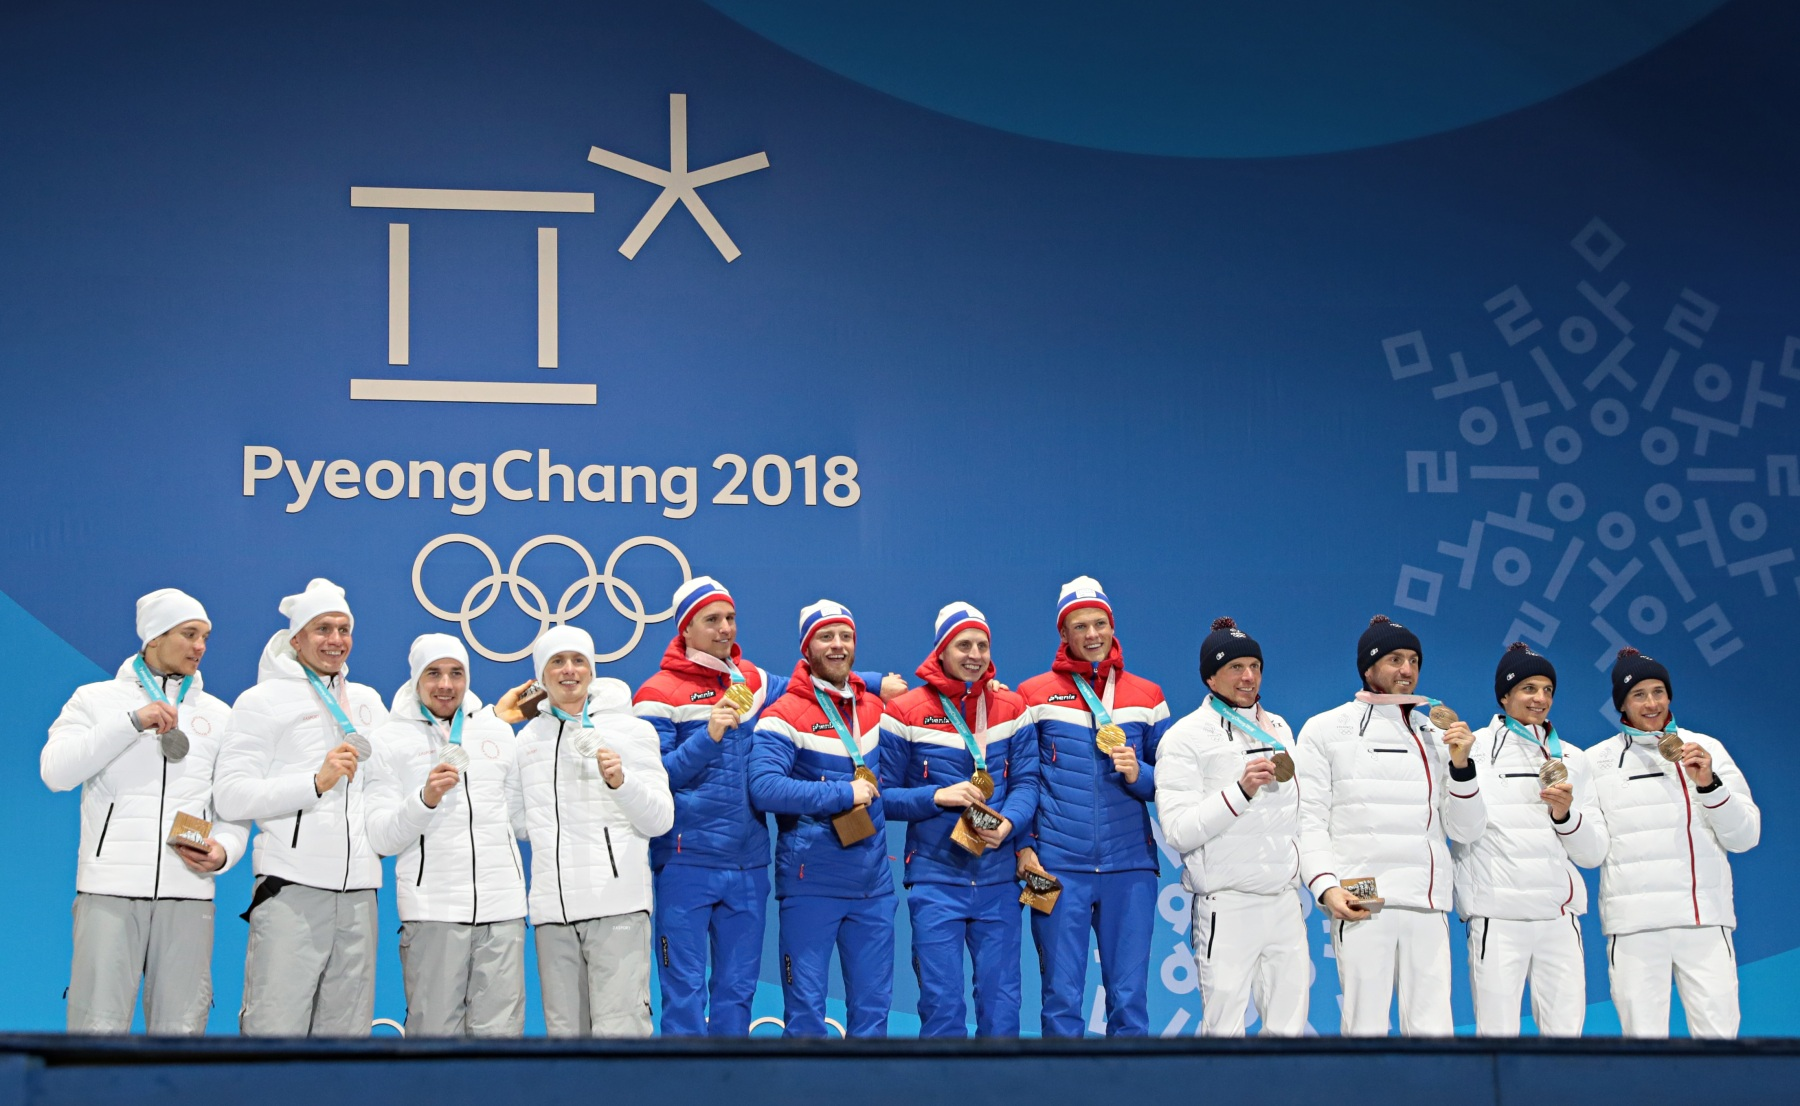 PYEONGCHANG-GUN, SOUTH KOREA - FEBRUARY 18:  Olympic Athlete from Russia wins the silver medal, team Norway wins the gold medal, team France wins the bronze medal of the cross country Men's Relay 4x10km during the Medal Ceremony at Medal Plaza on February 18, 2018 in Pyeongchang-gun, South Korea. (Photo by Laurent Salino/Agence Zoom/Getty Images)